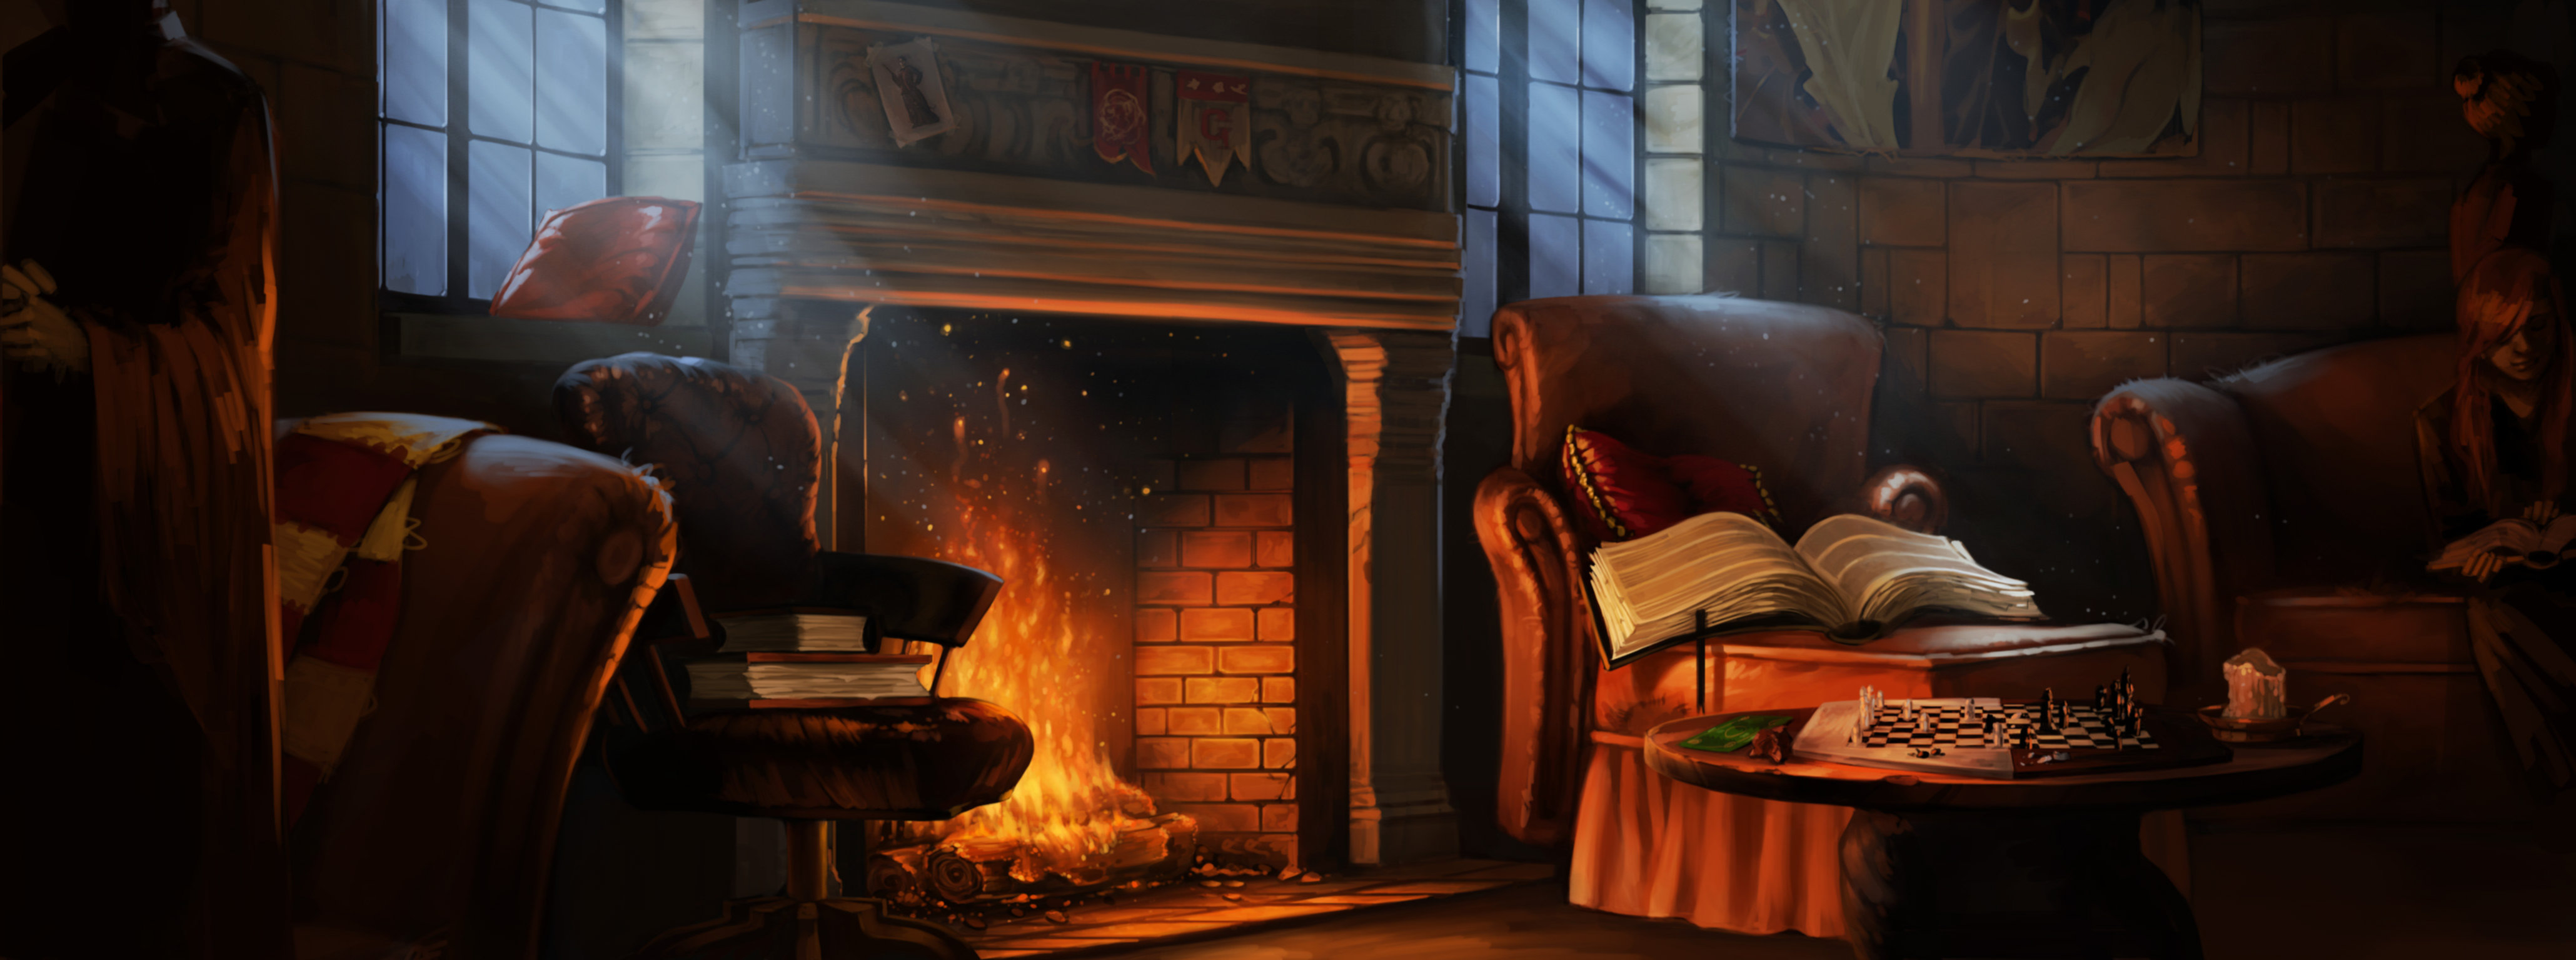 GryffindorCommonRoom PM B1C13M1 GryffindorCommonRoomFireplace Moment